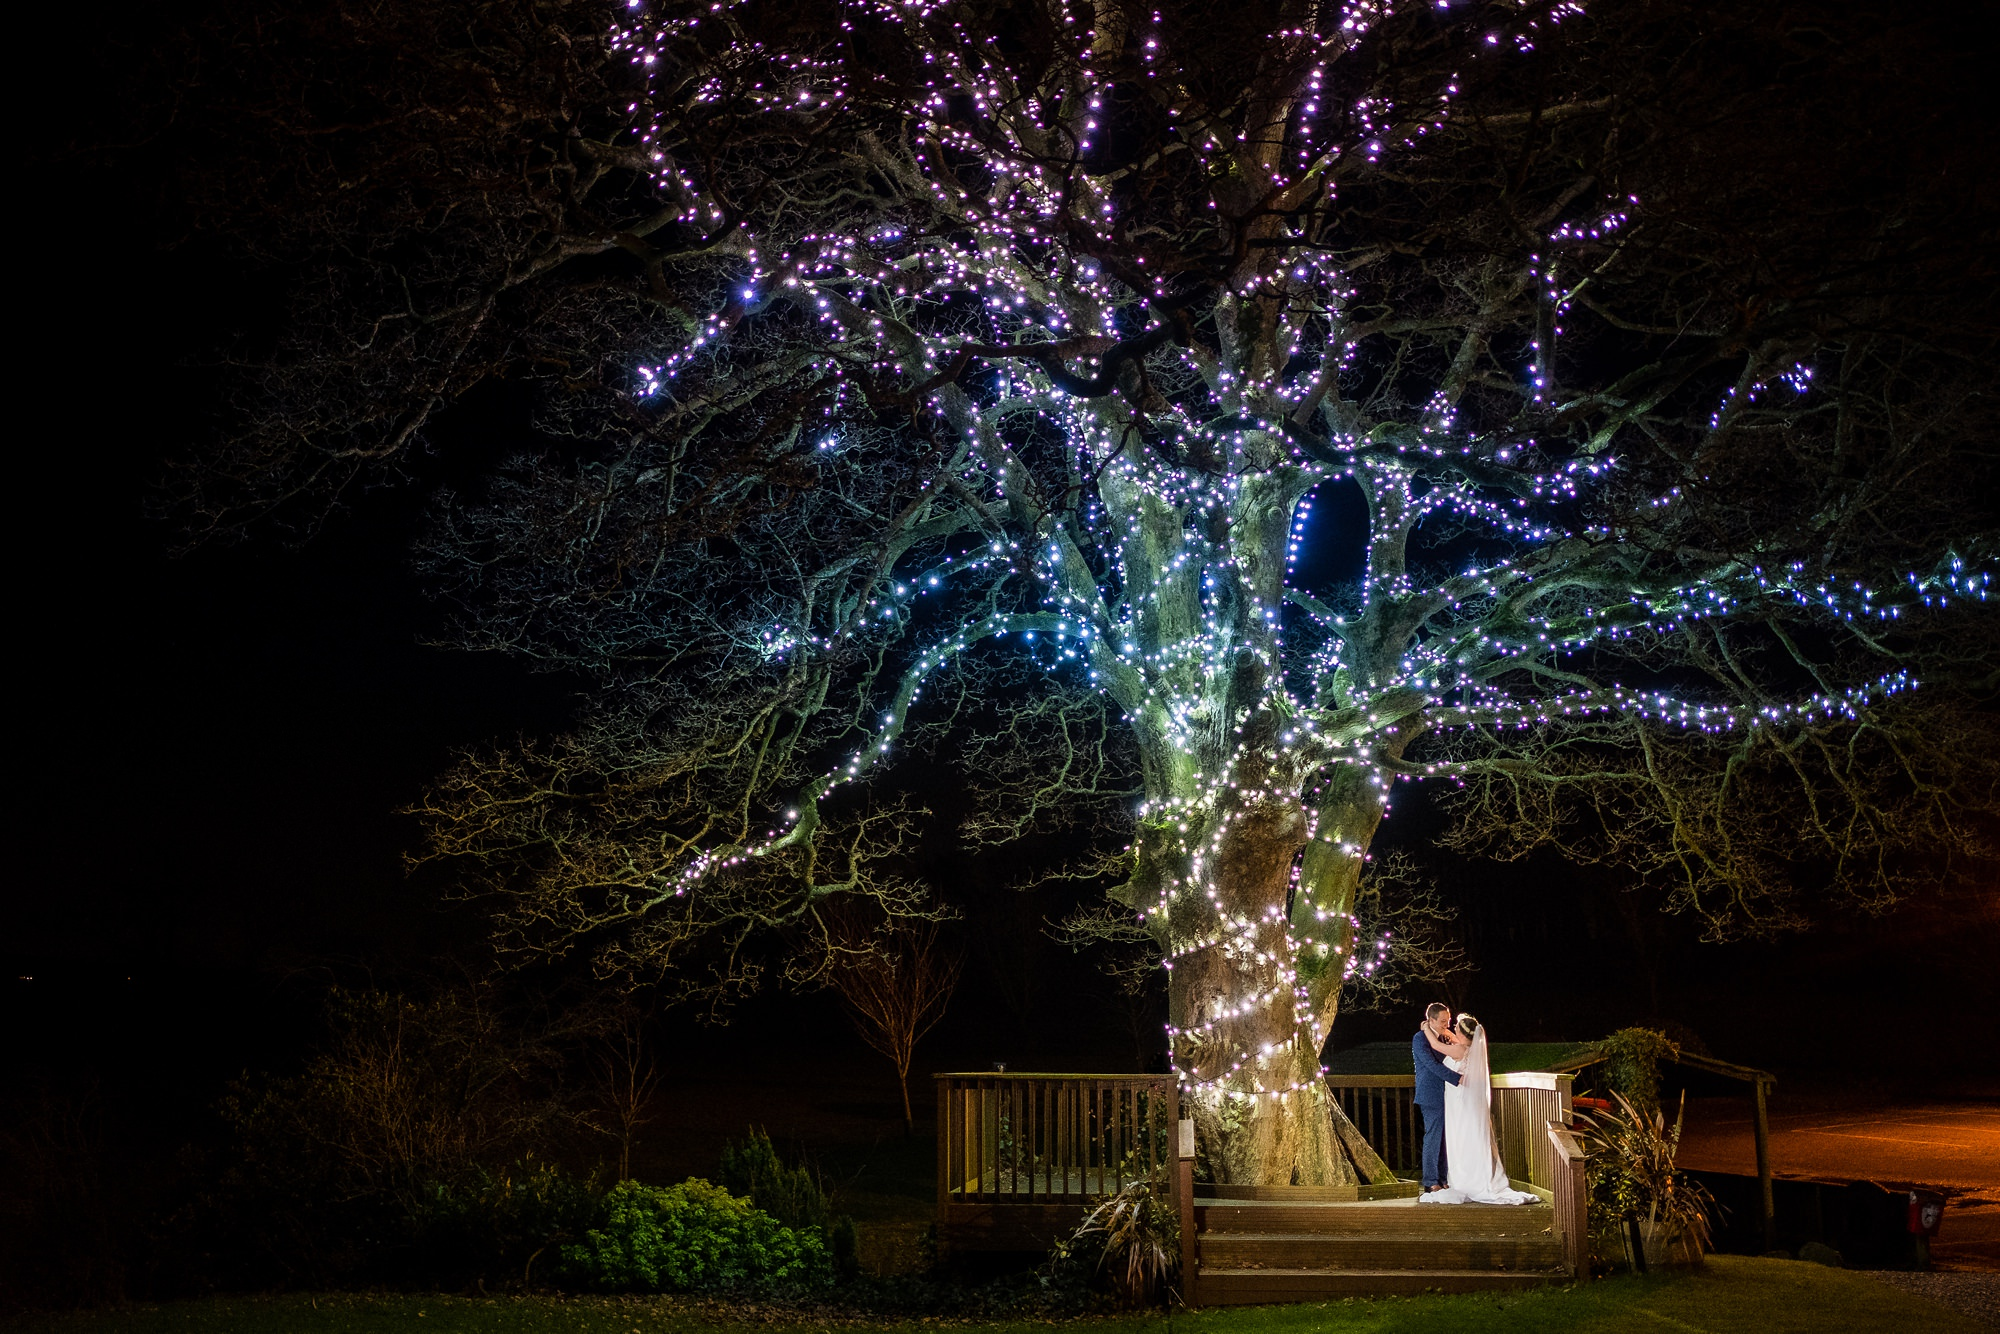 bride and groom by large lit tree